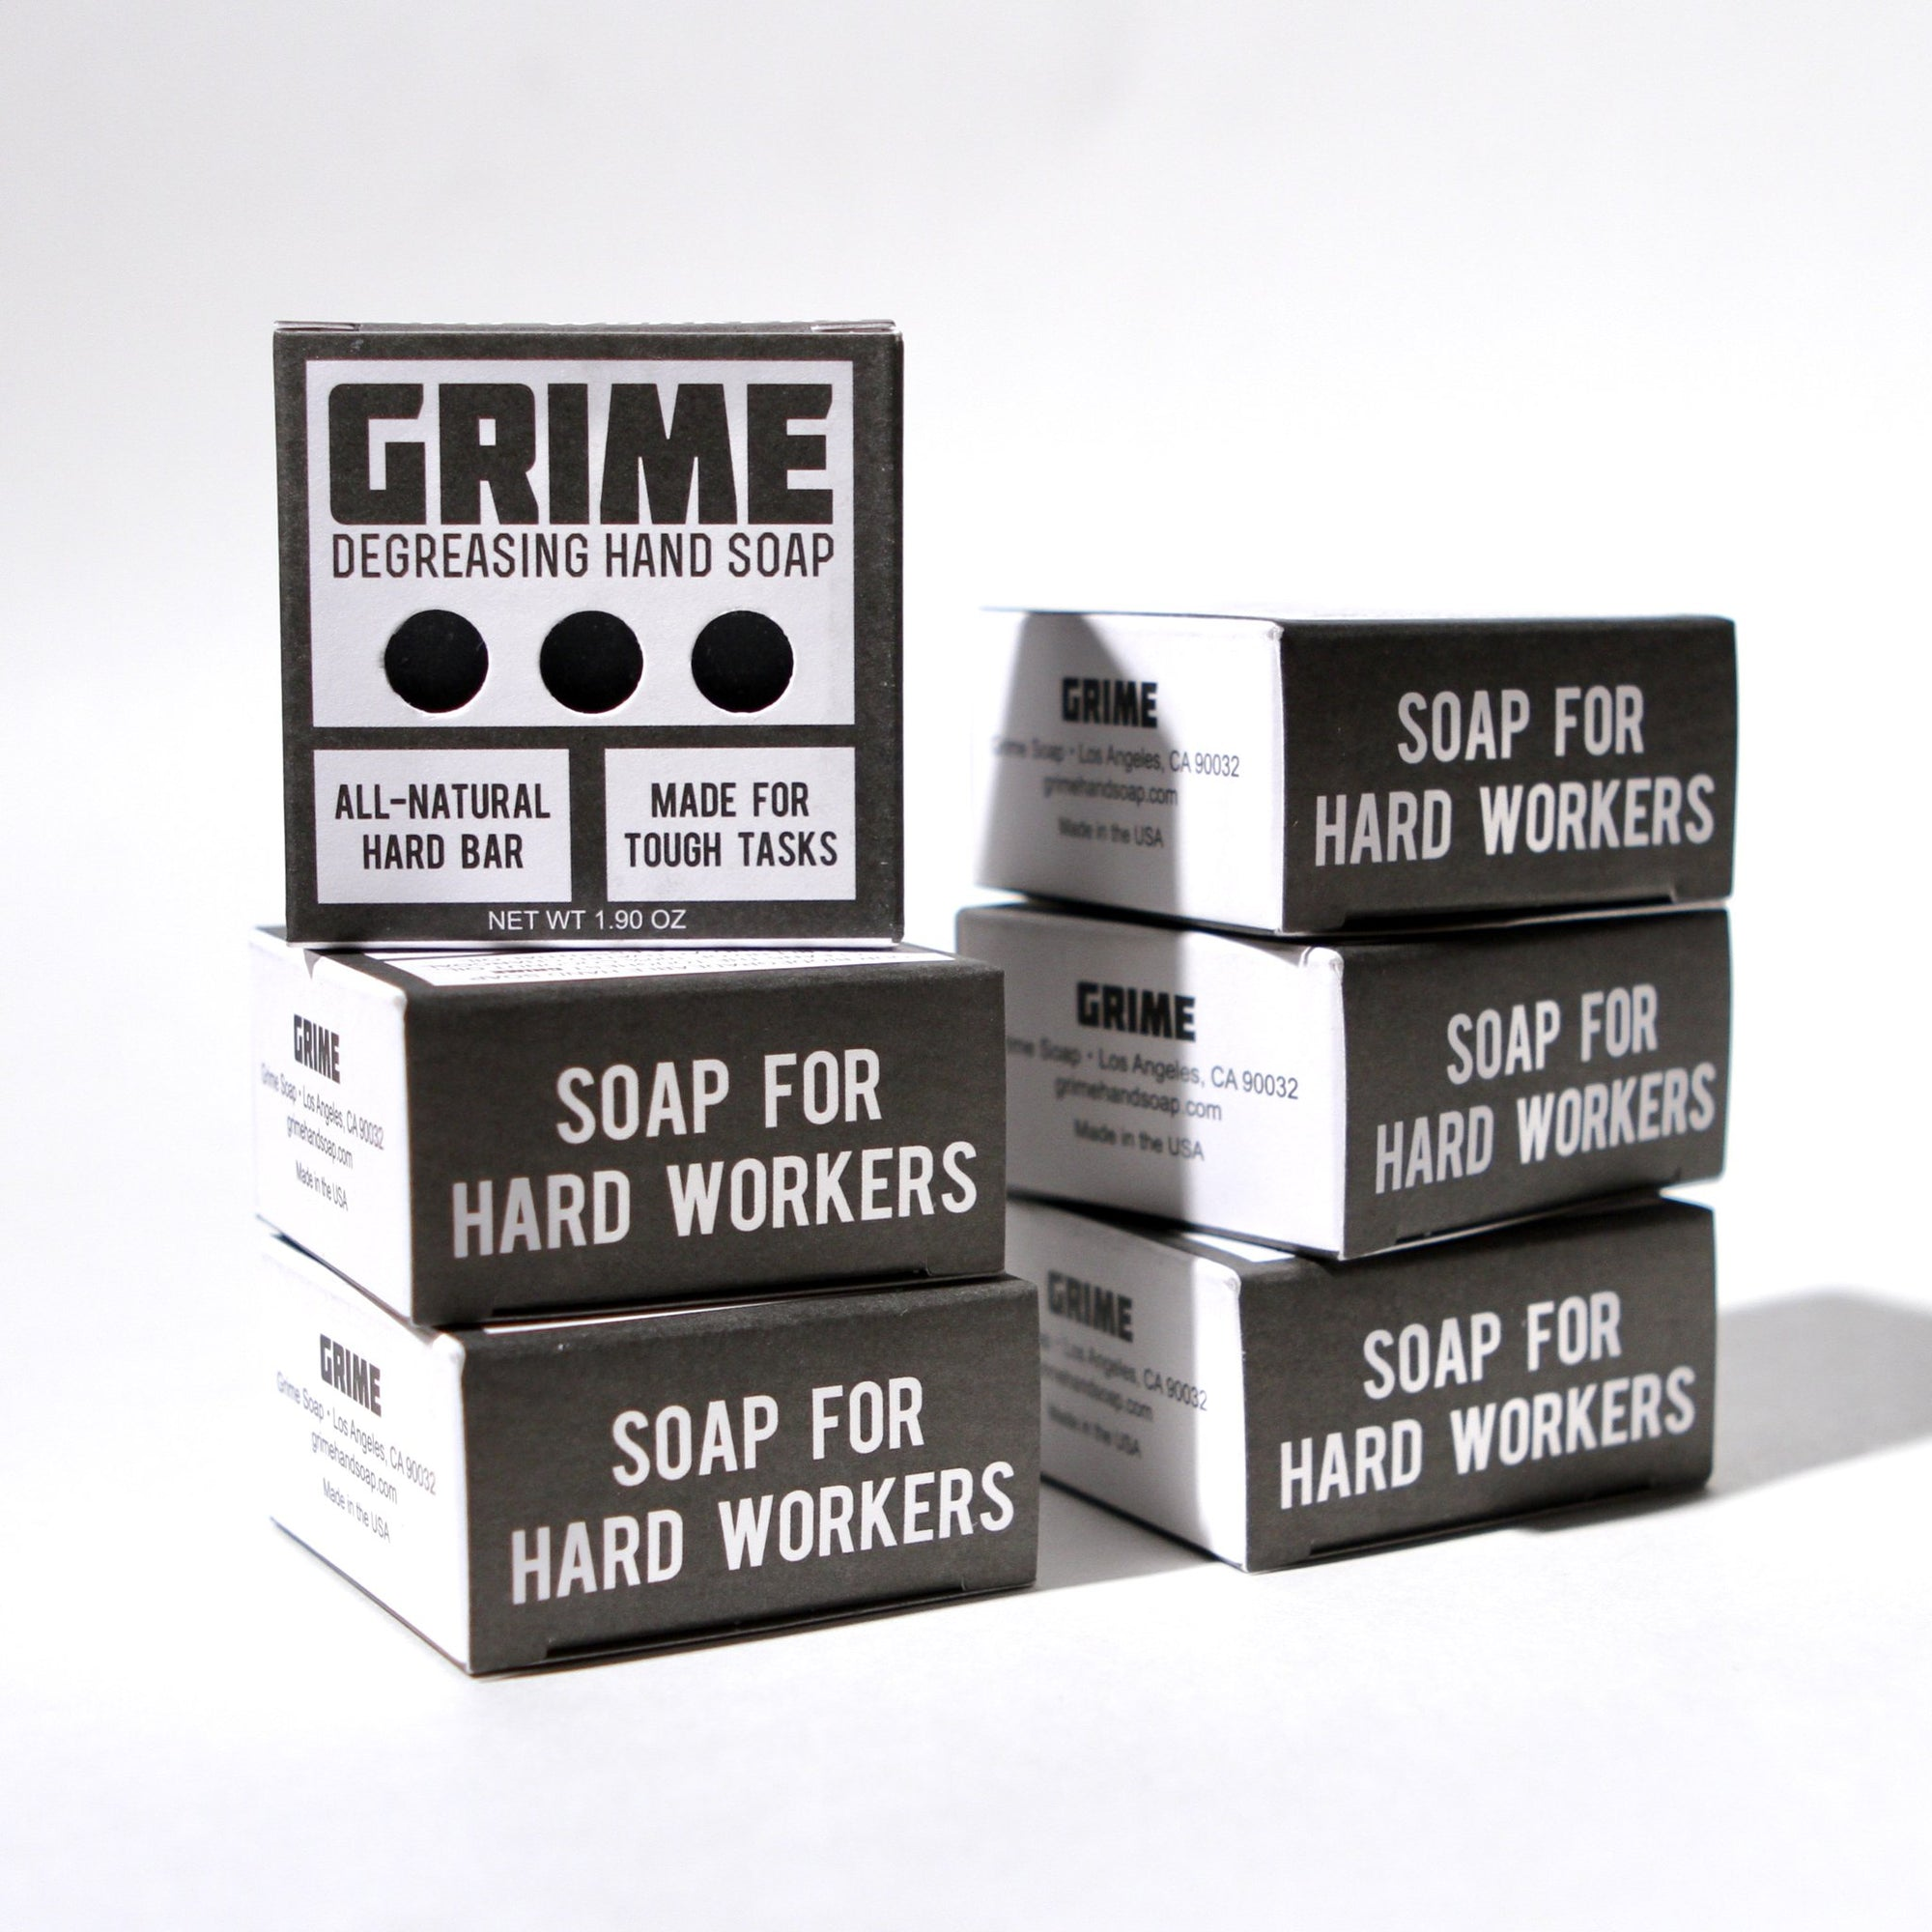 Grime Degreasing Hand Soap